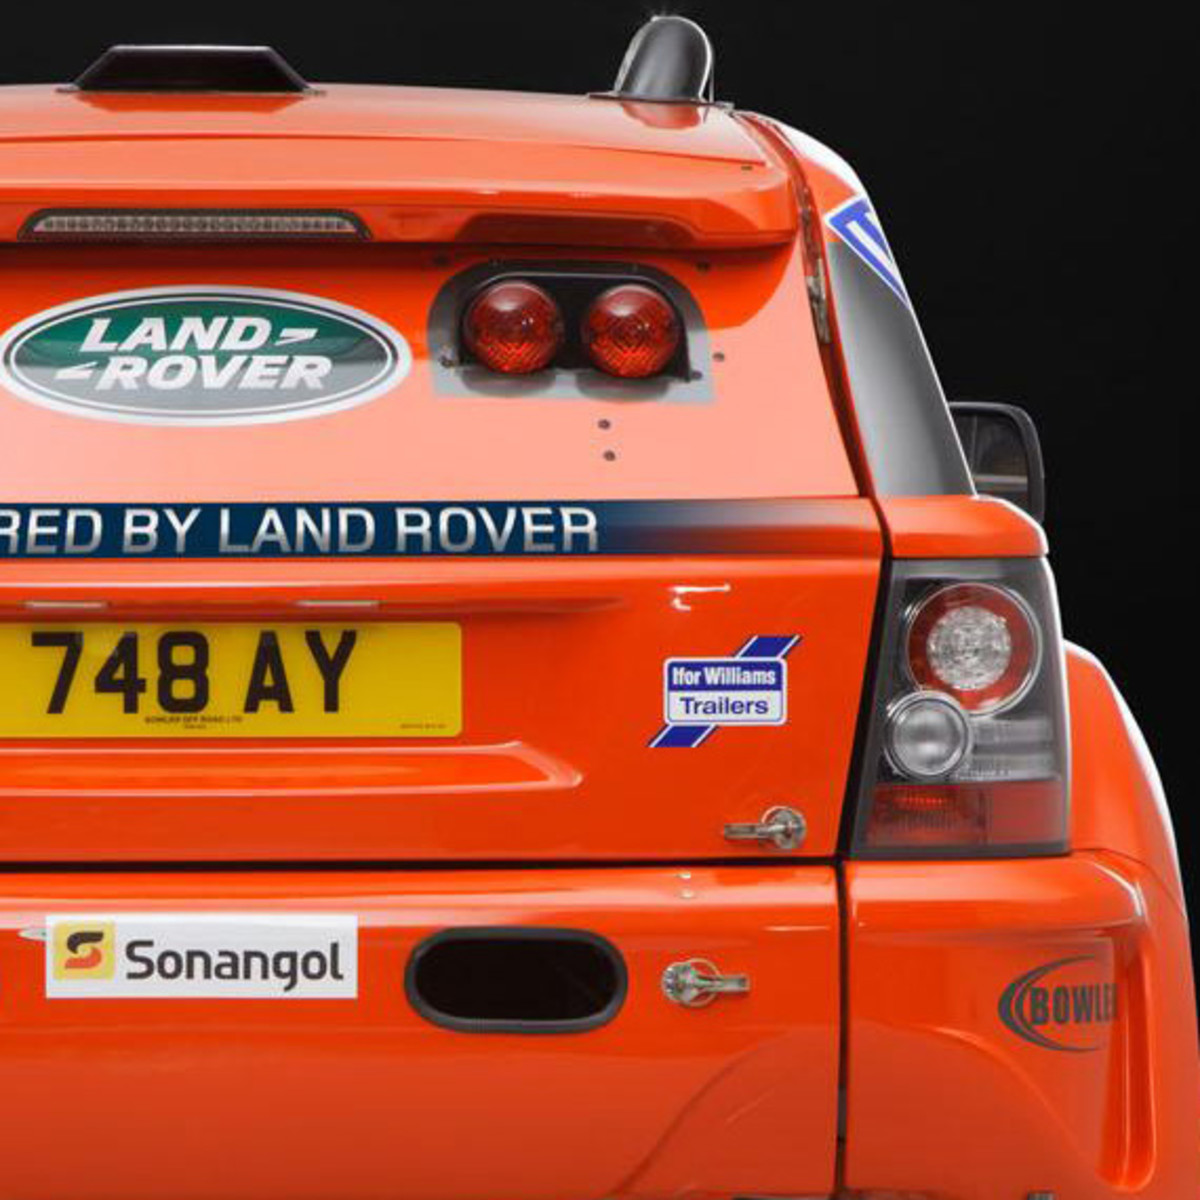 bowler-land-rover-exr-off-road-rally-car-10